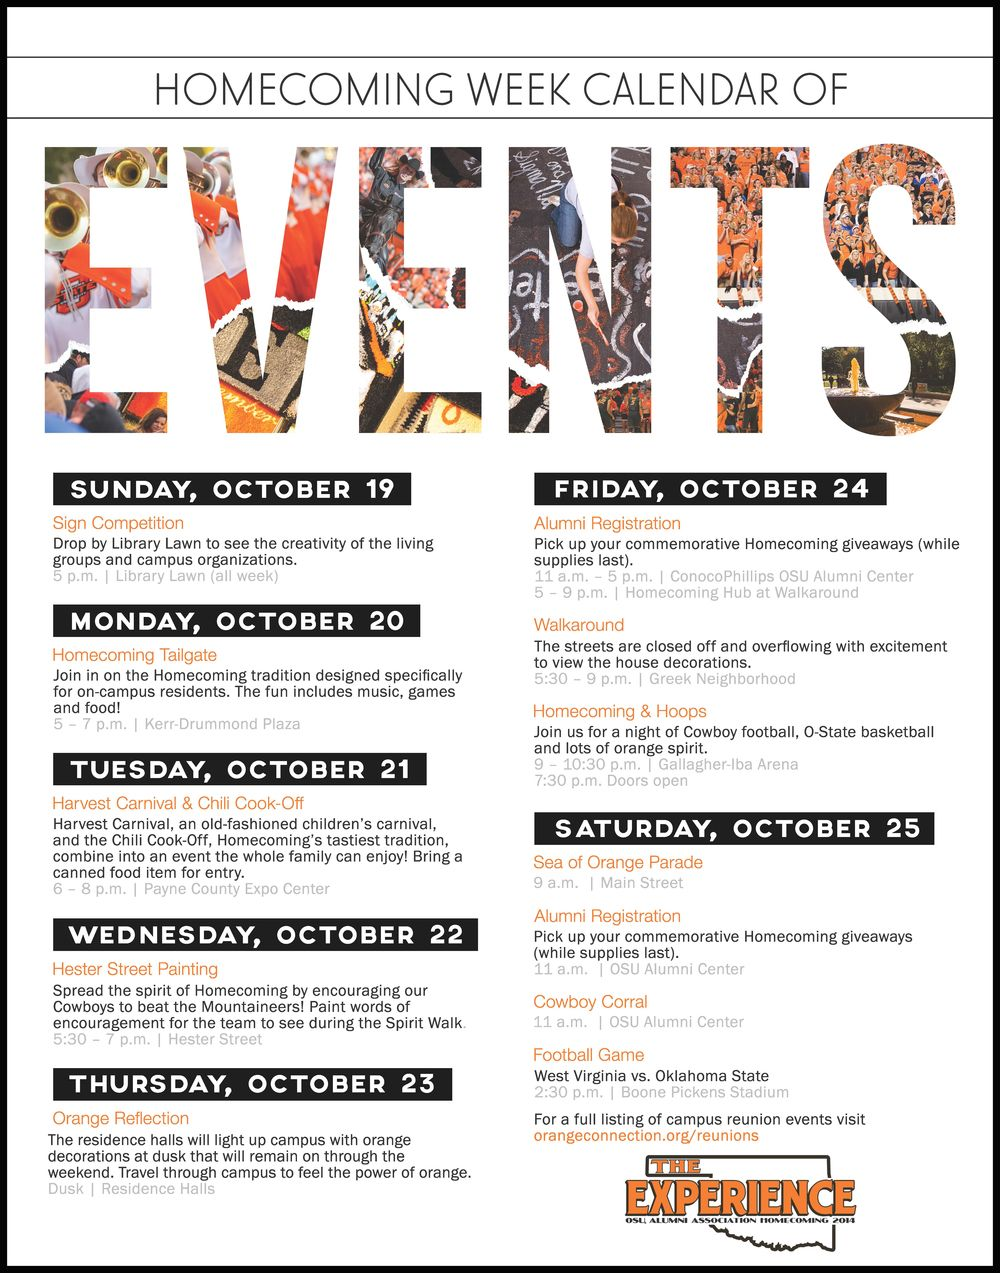 Schedule Of Events Flyer   Google Search